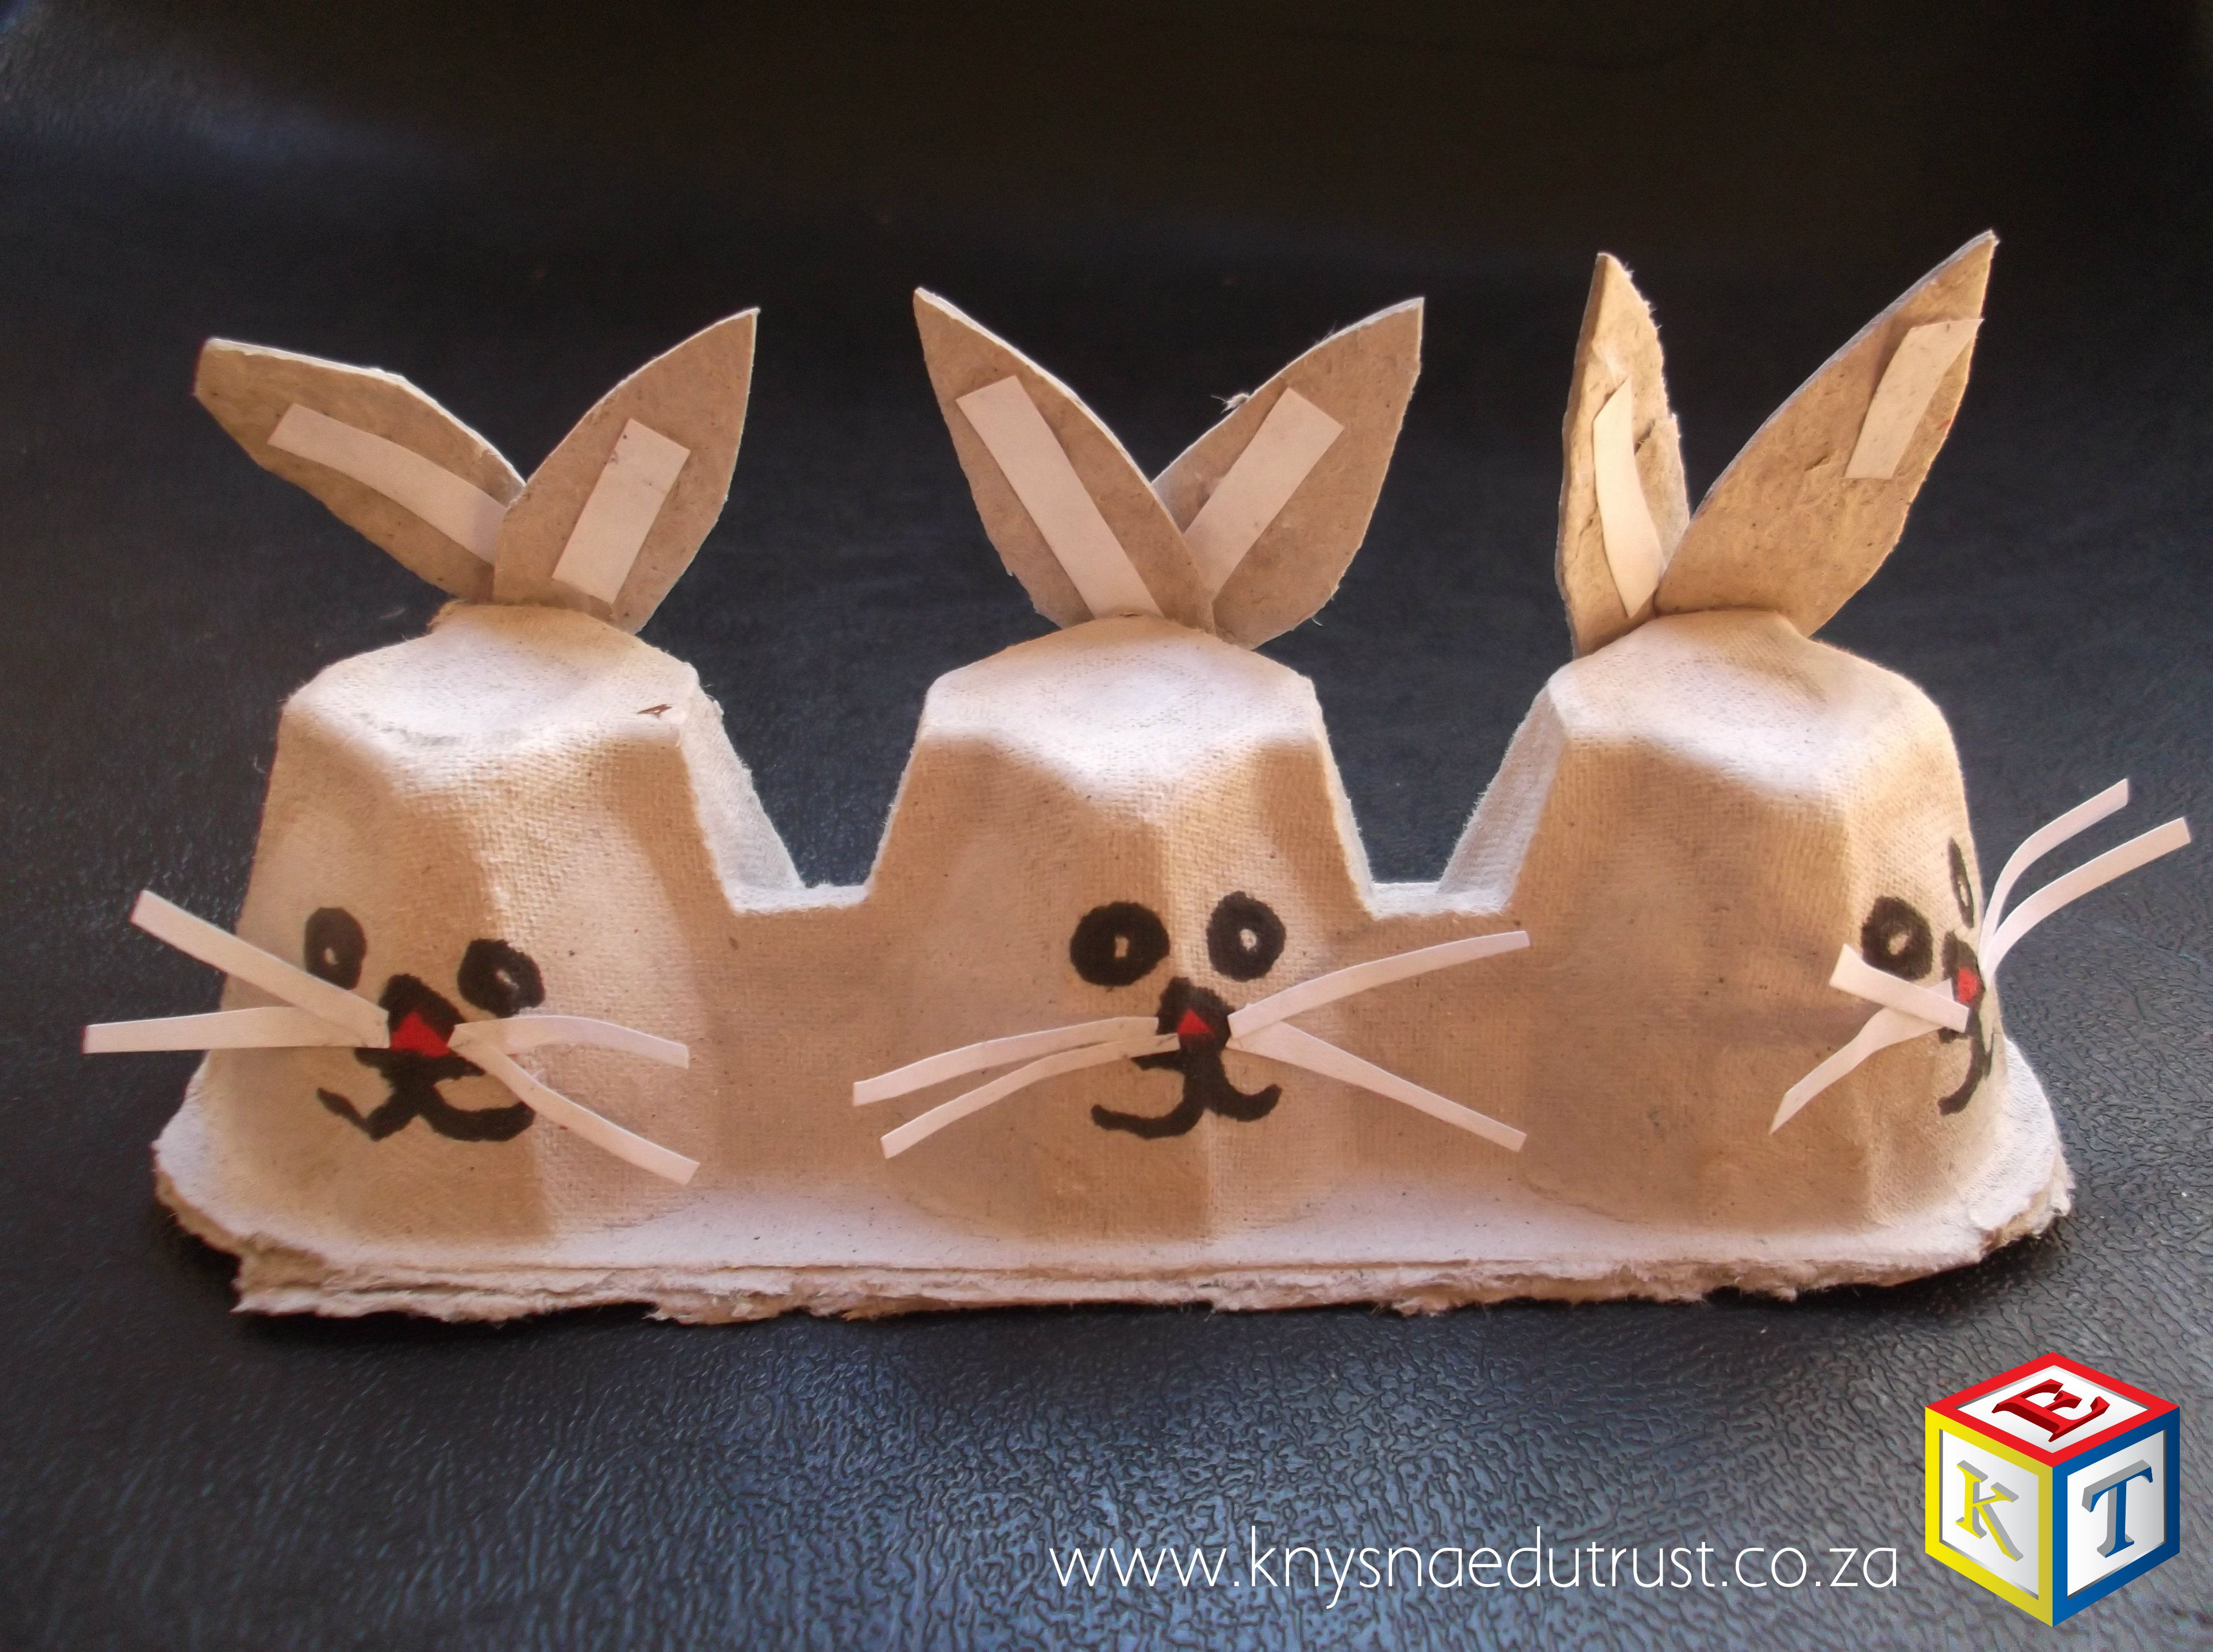 Three Bunnies In A Row Recycle Egg Cartons By Adding Faces Whiskers And Ears How Cute And Clever Perfect For Pr Educational Crafts Easter Crafts Egg Carton